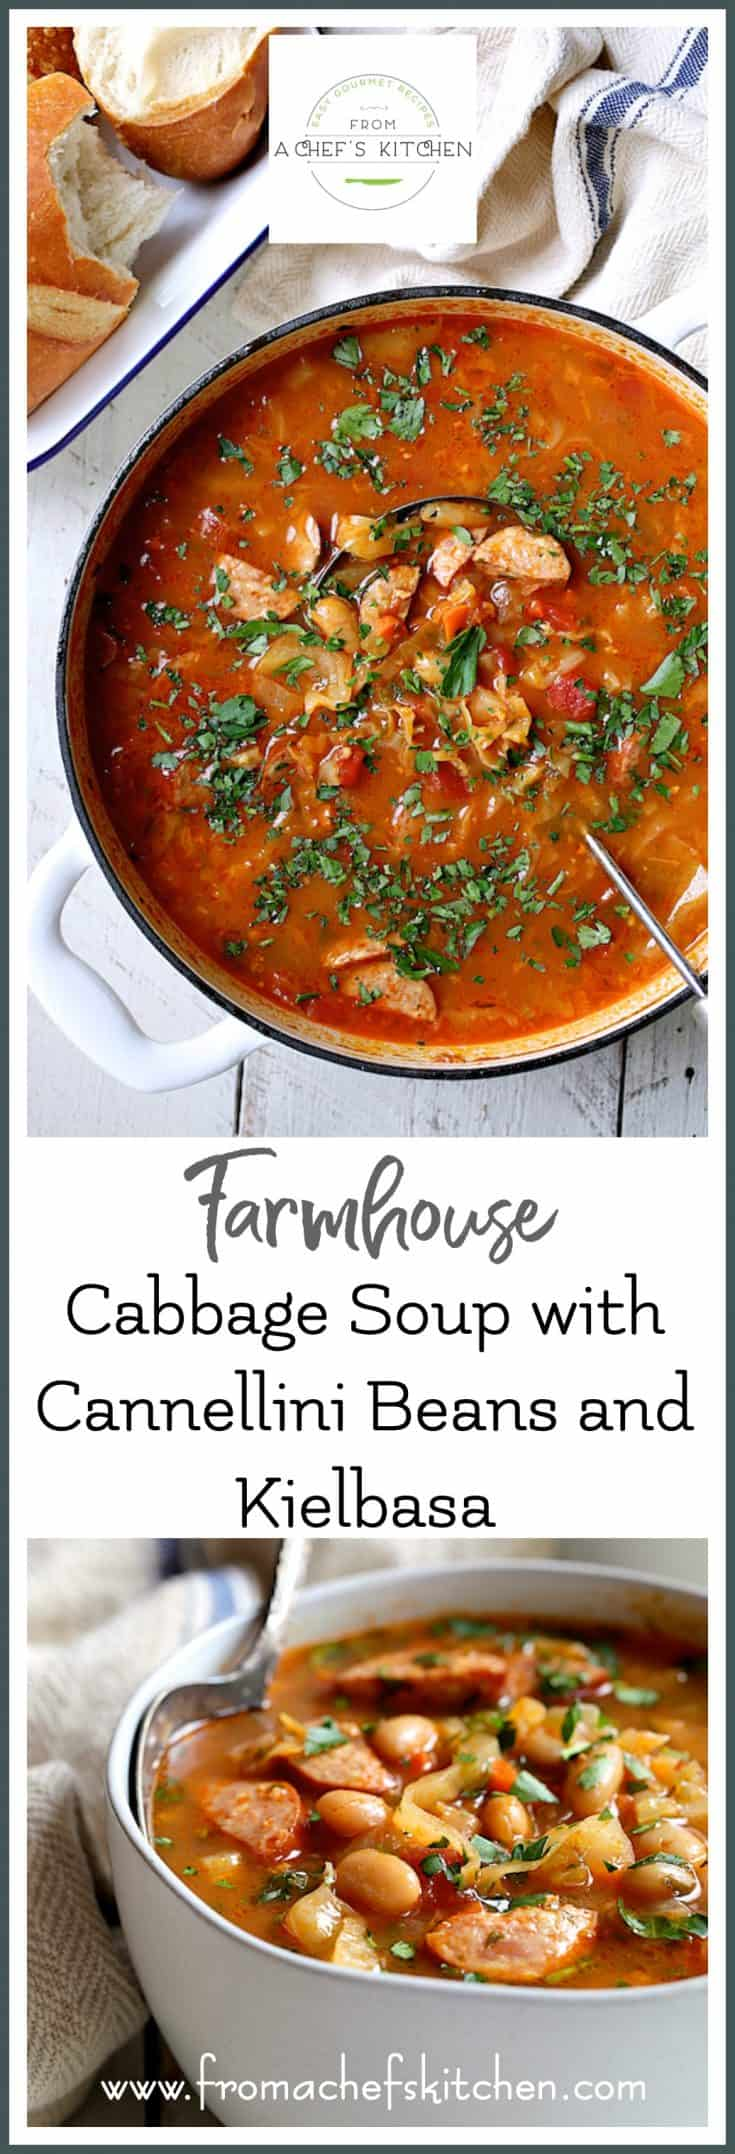 Farmhouse Cabbage Soup with Cannellini Beans and Kielbasa is rustic, hearty and some of the best soup you'll make all fall and winter long! #soup #cabbagesoup #souprecipes